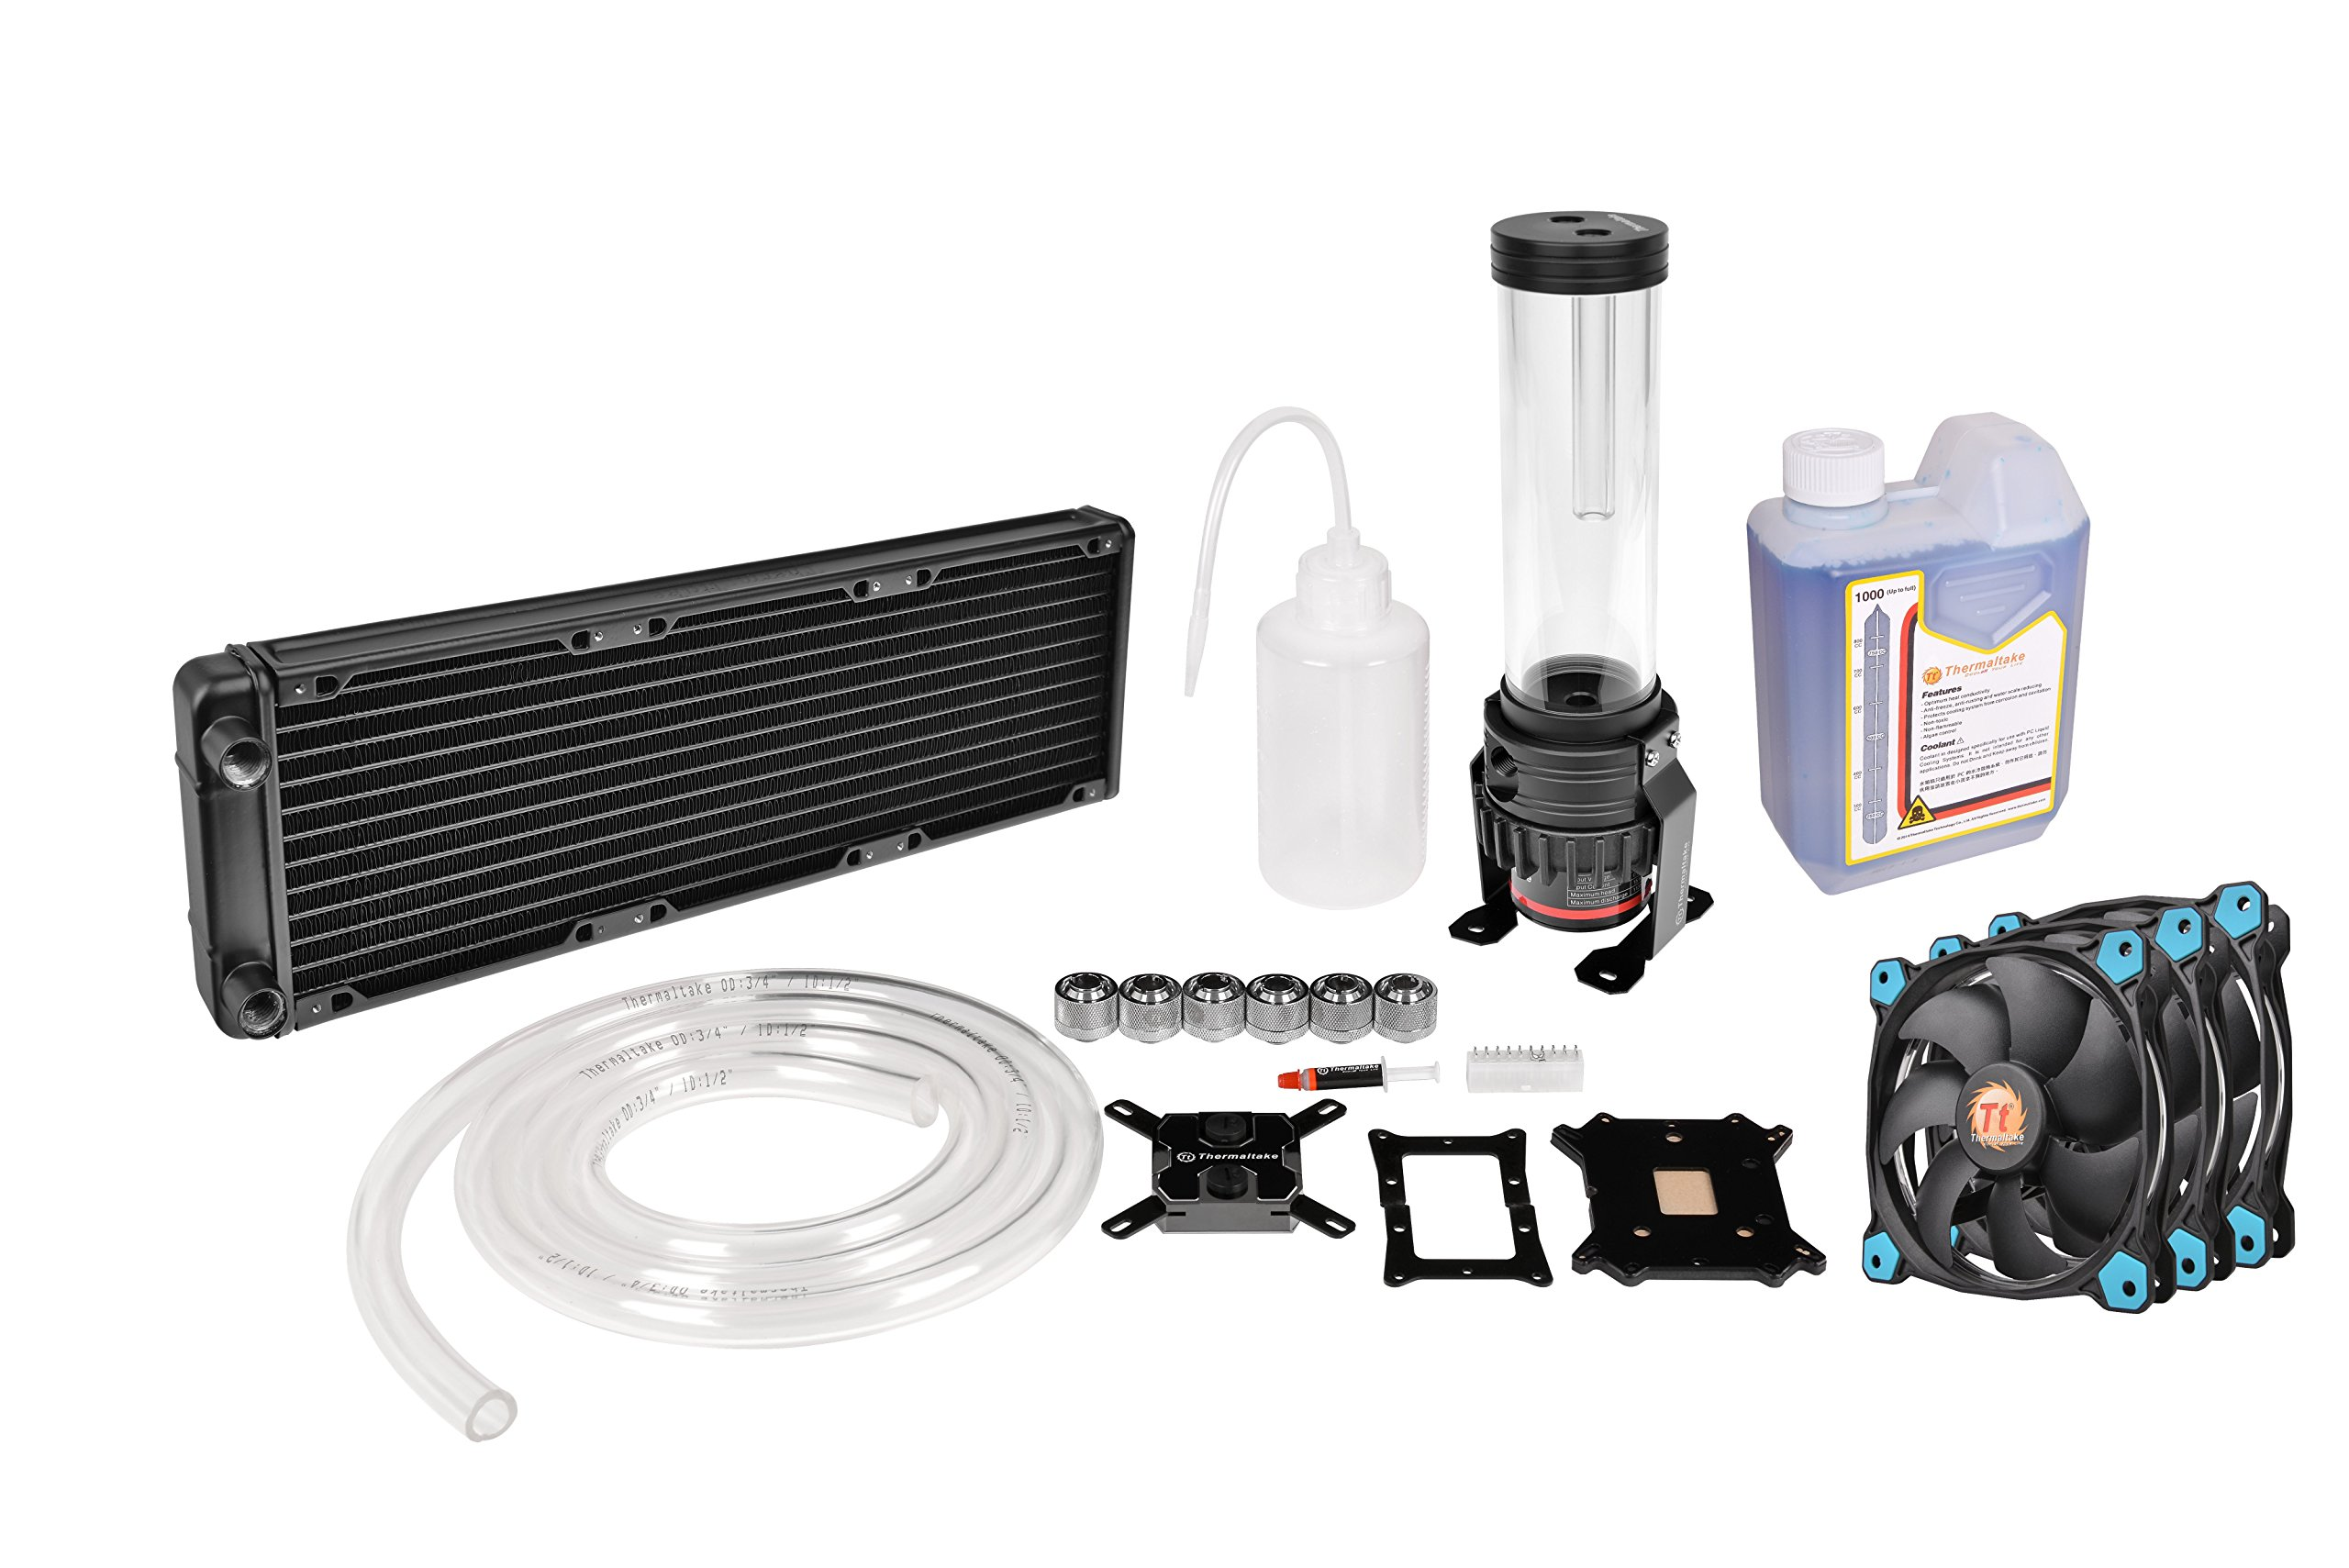 Thermaltake PACIFIC DIY LCS R360 D5 Res/Pump Riing Blue LED Edition Water Cooling Kit CL-W115-CA12BU-A by Thermaltake